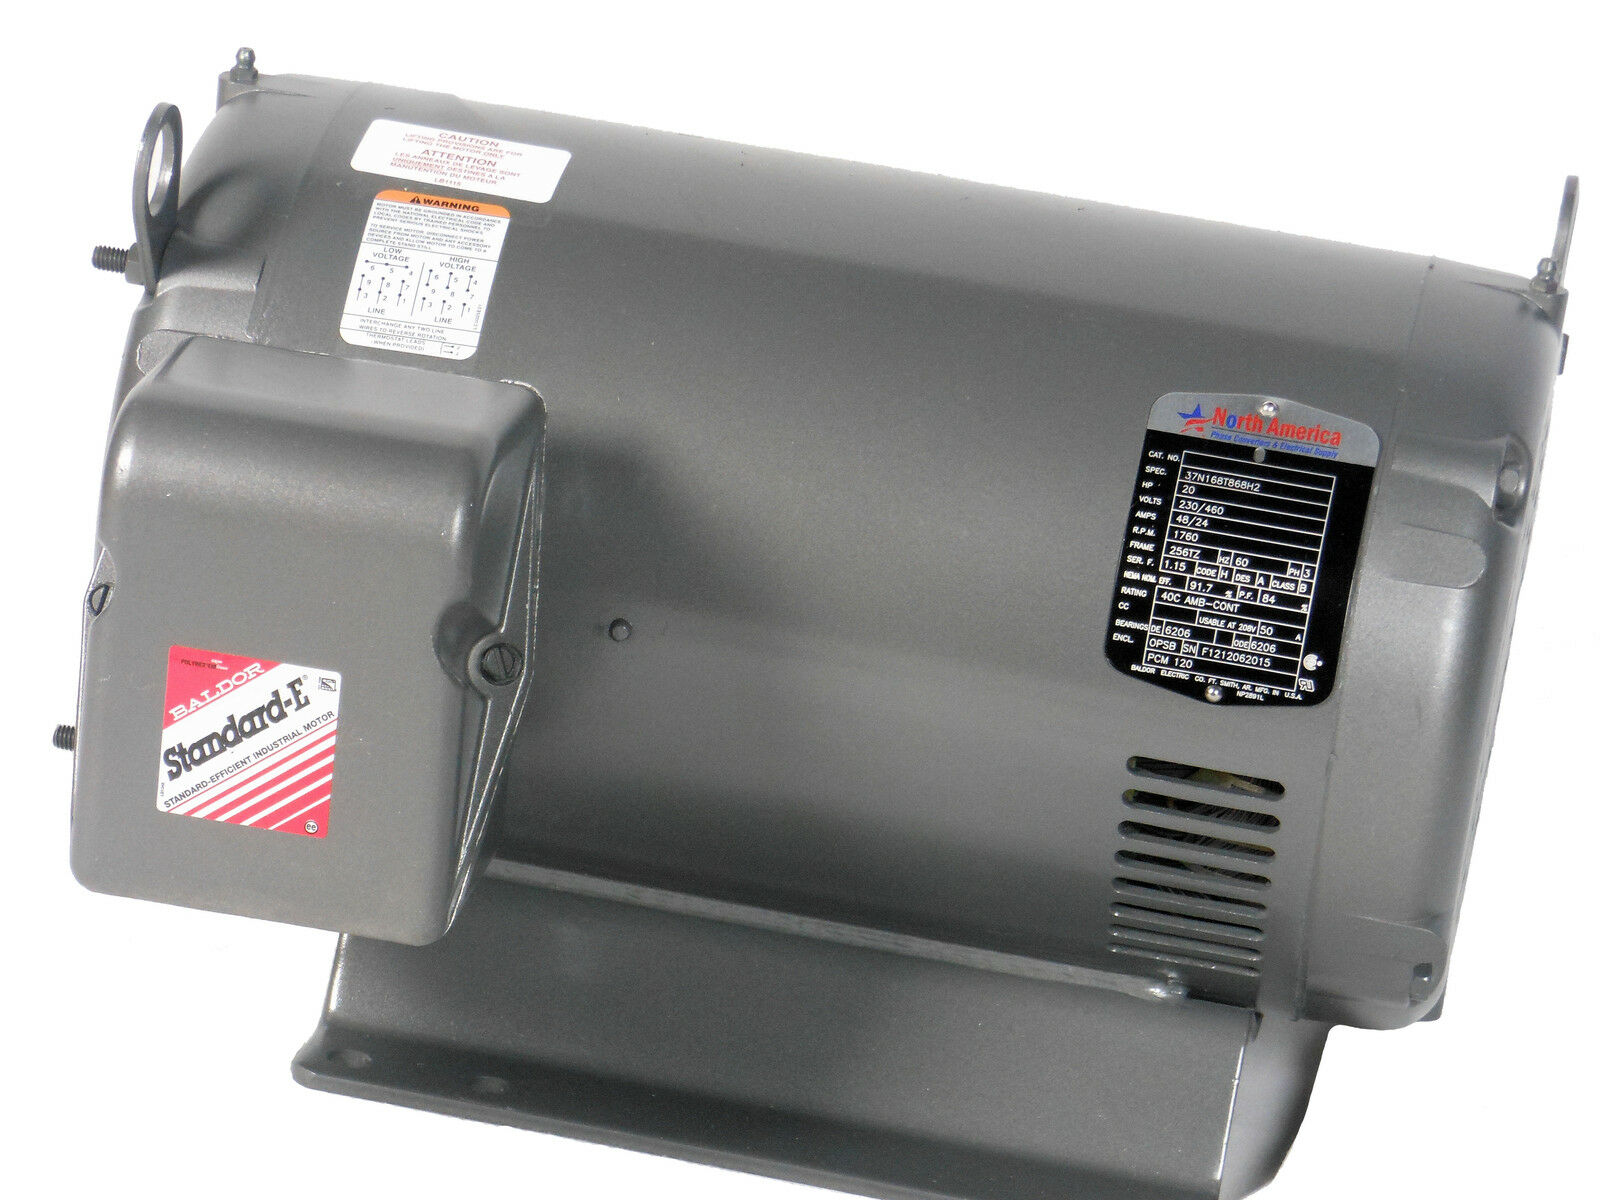 PL-20 Pro-Line 20HP Rotary Phase Converter - Built-In ...